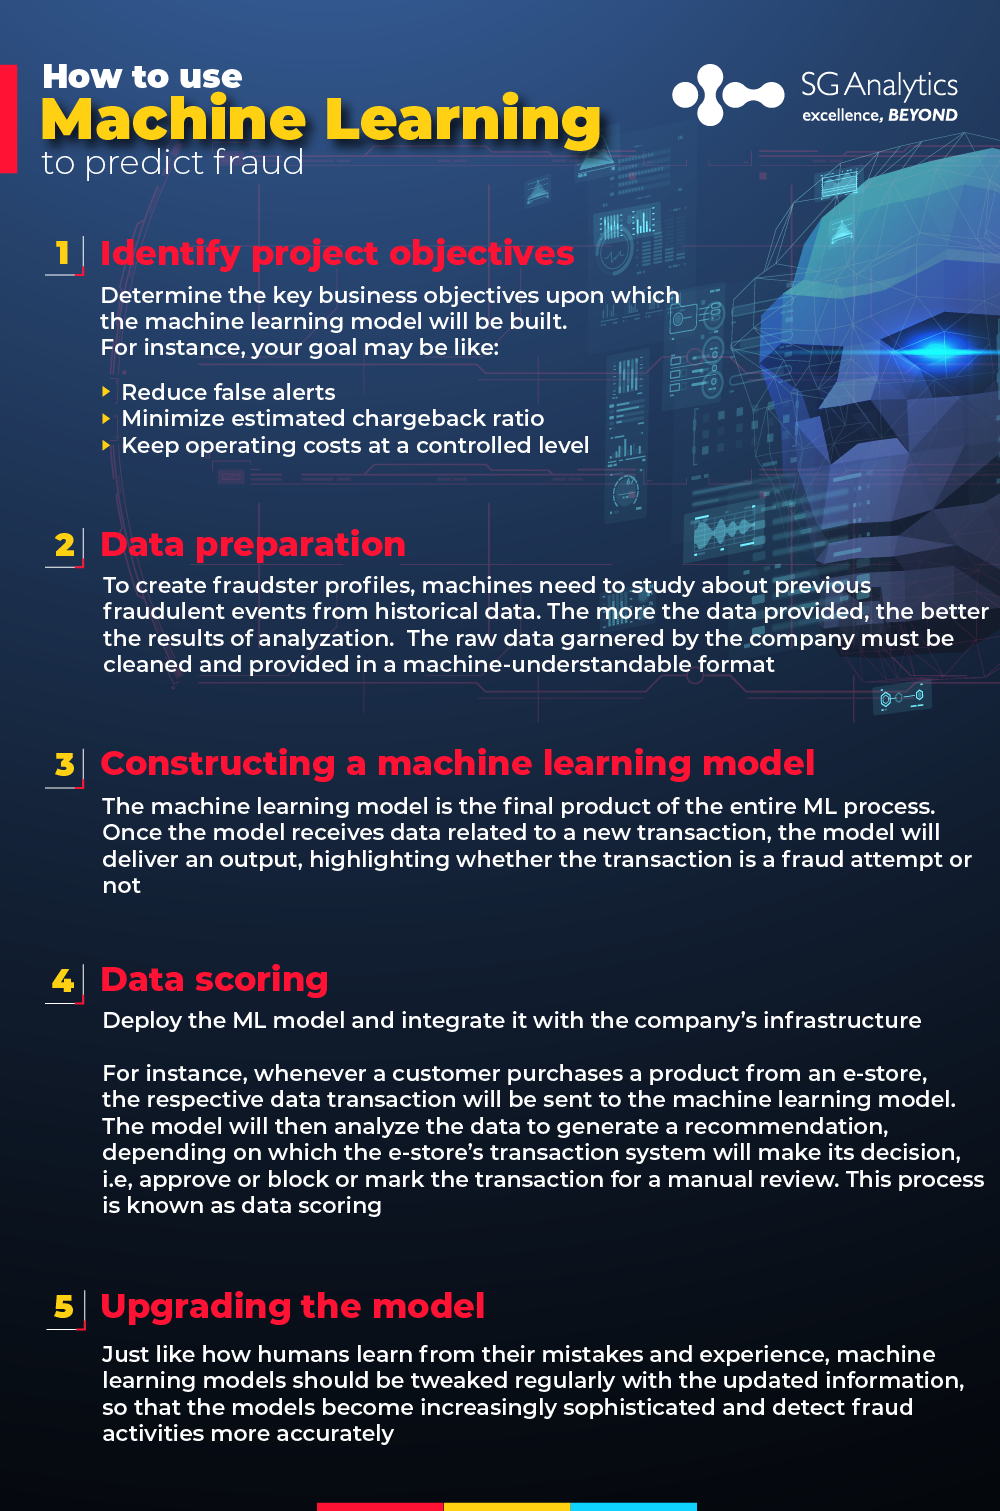 How to use machine learning to predict fraud | SG Analytics